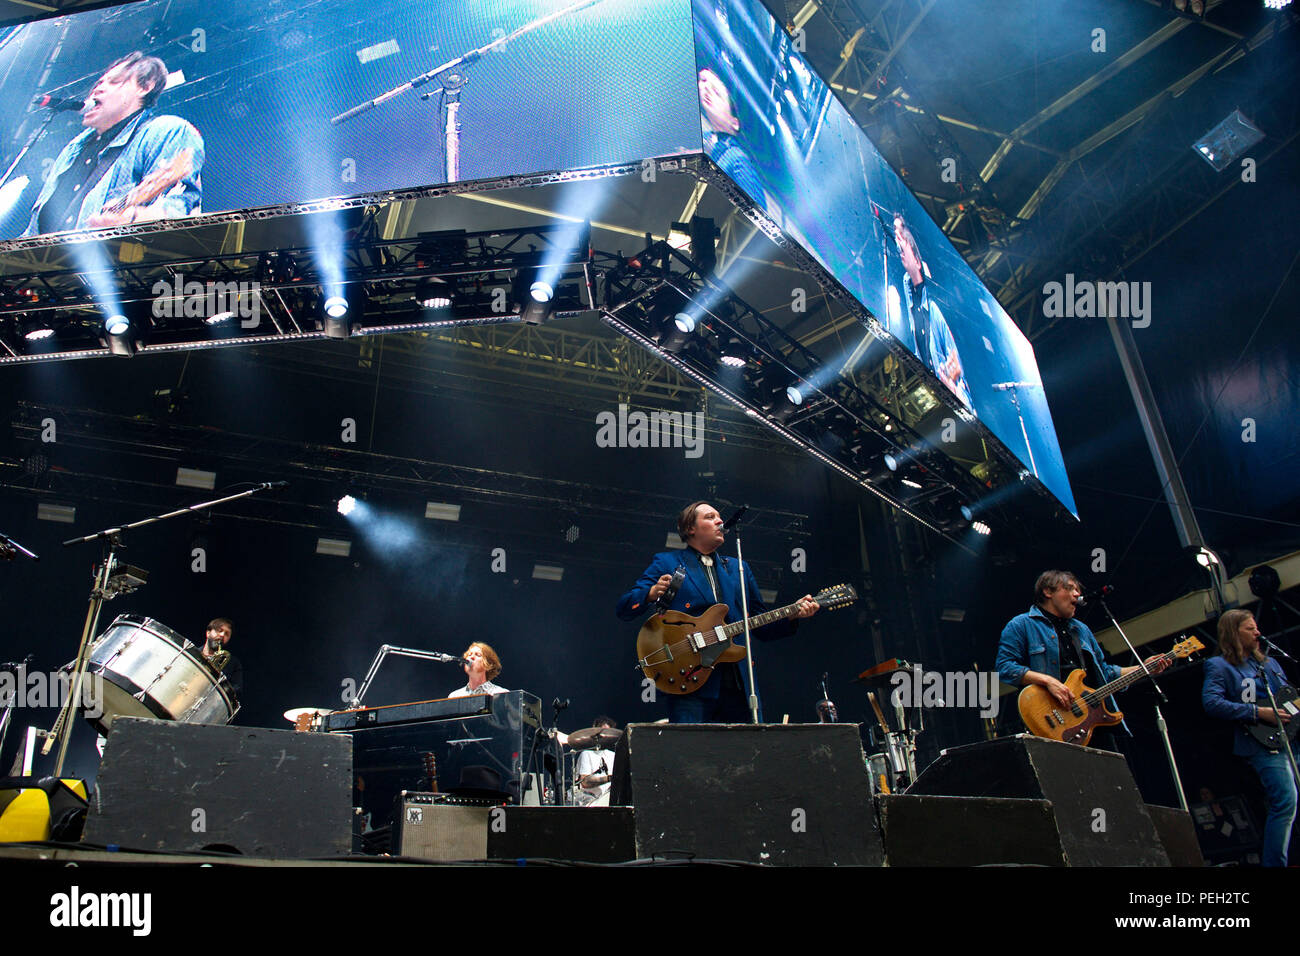 Berlin, Deutschland. 13th Aug, 2018. Colin Stetson, Richard Parry, Win Butler, William Butler and Tim Kingsbury of Arcade Fire live at the Citadel Music Festival on the Spandau Citadel. Berlin, 13.08.2018 | usage worldwide Credit: dpa/Alamy Live News - Stock Image